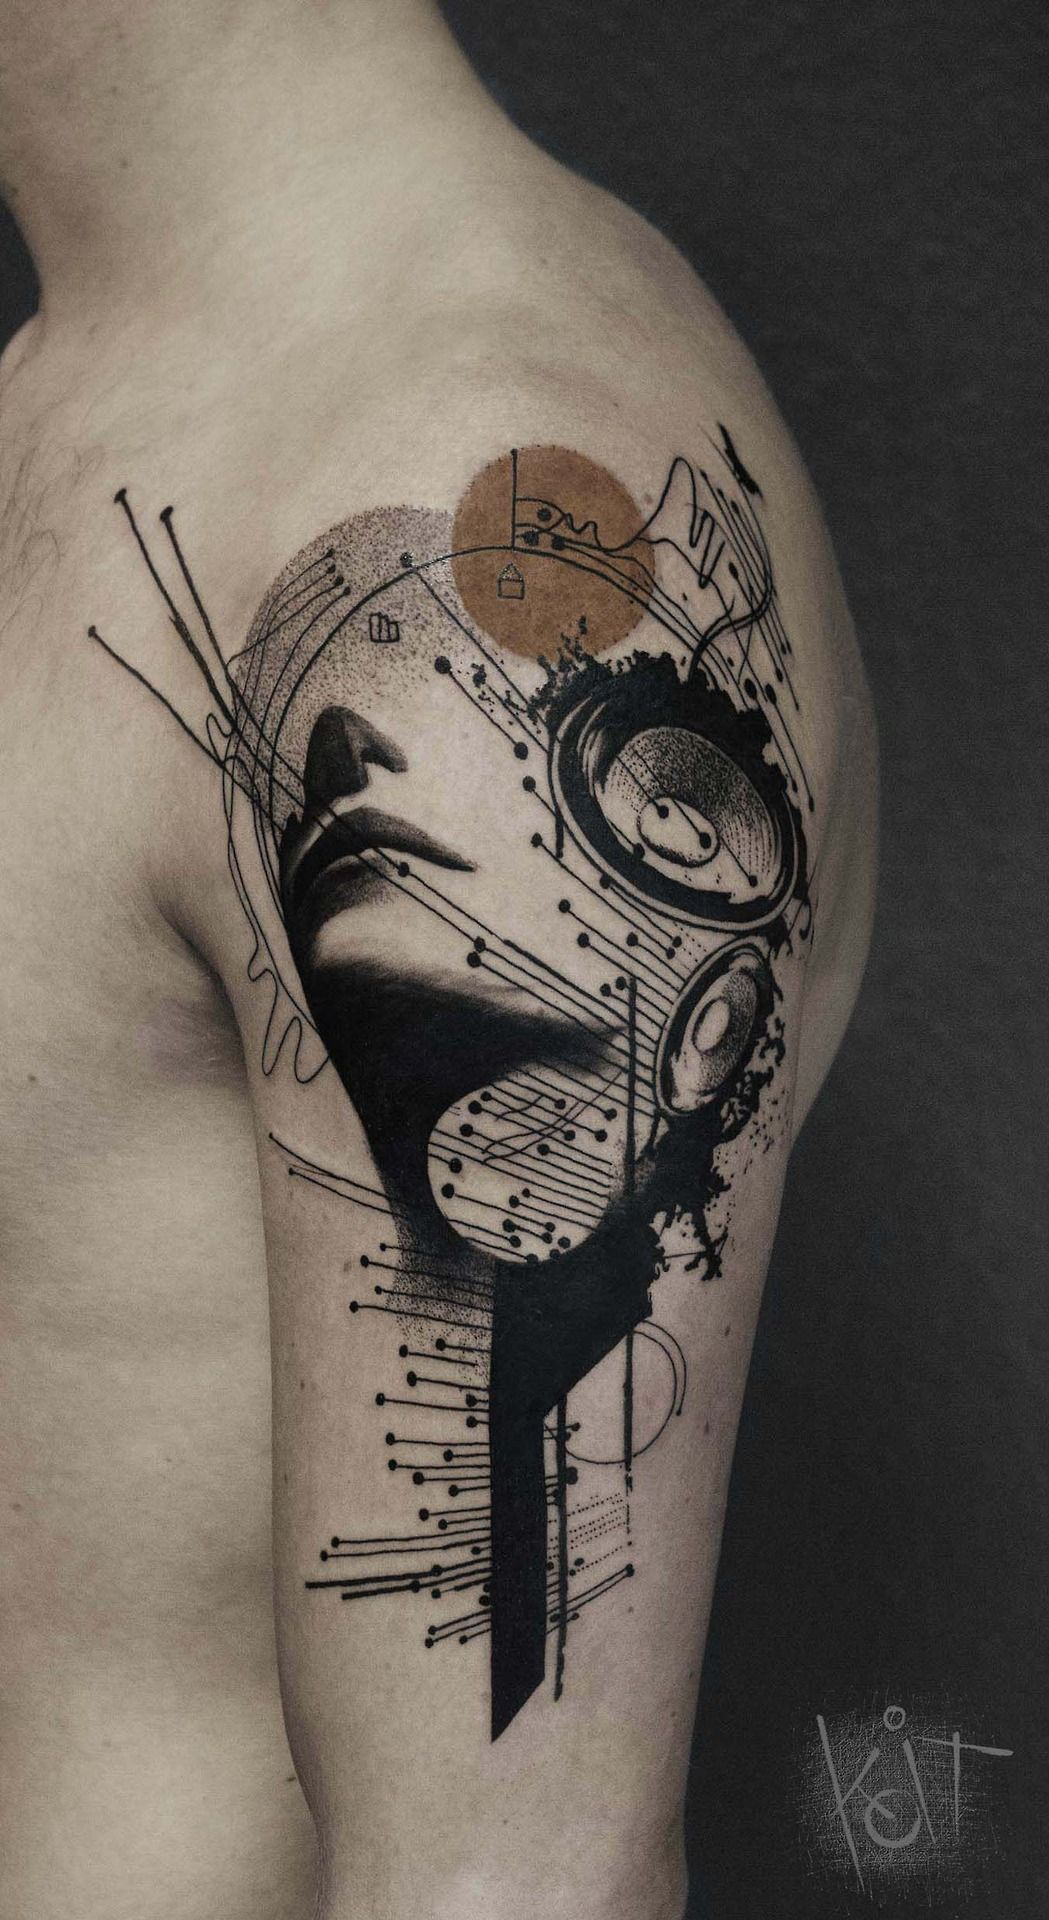 e00ae9d71 Graphic style, music theme arm tattoo with girl face, speakers and abstract  elements. Ink | Inked men | Abstract tattoo | Berlin tattoo artist |  Germany ...